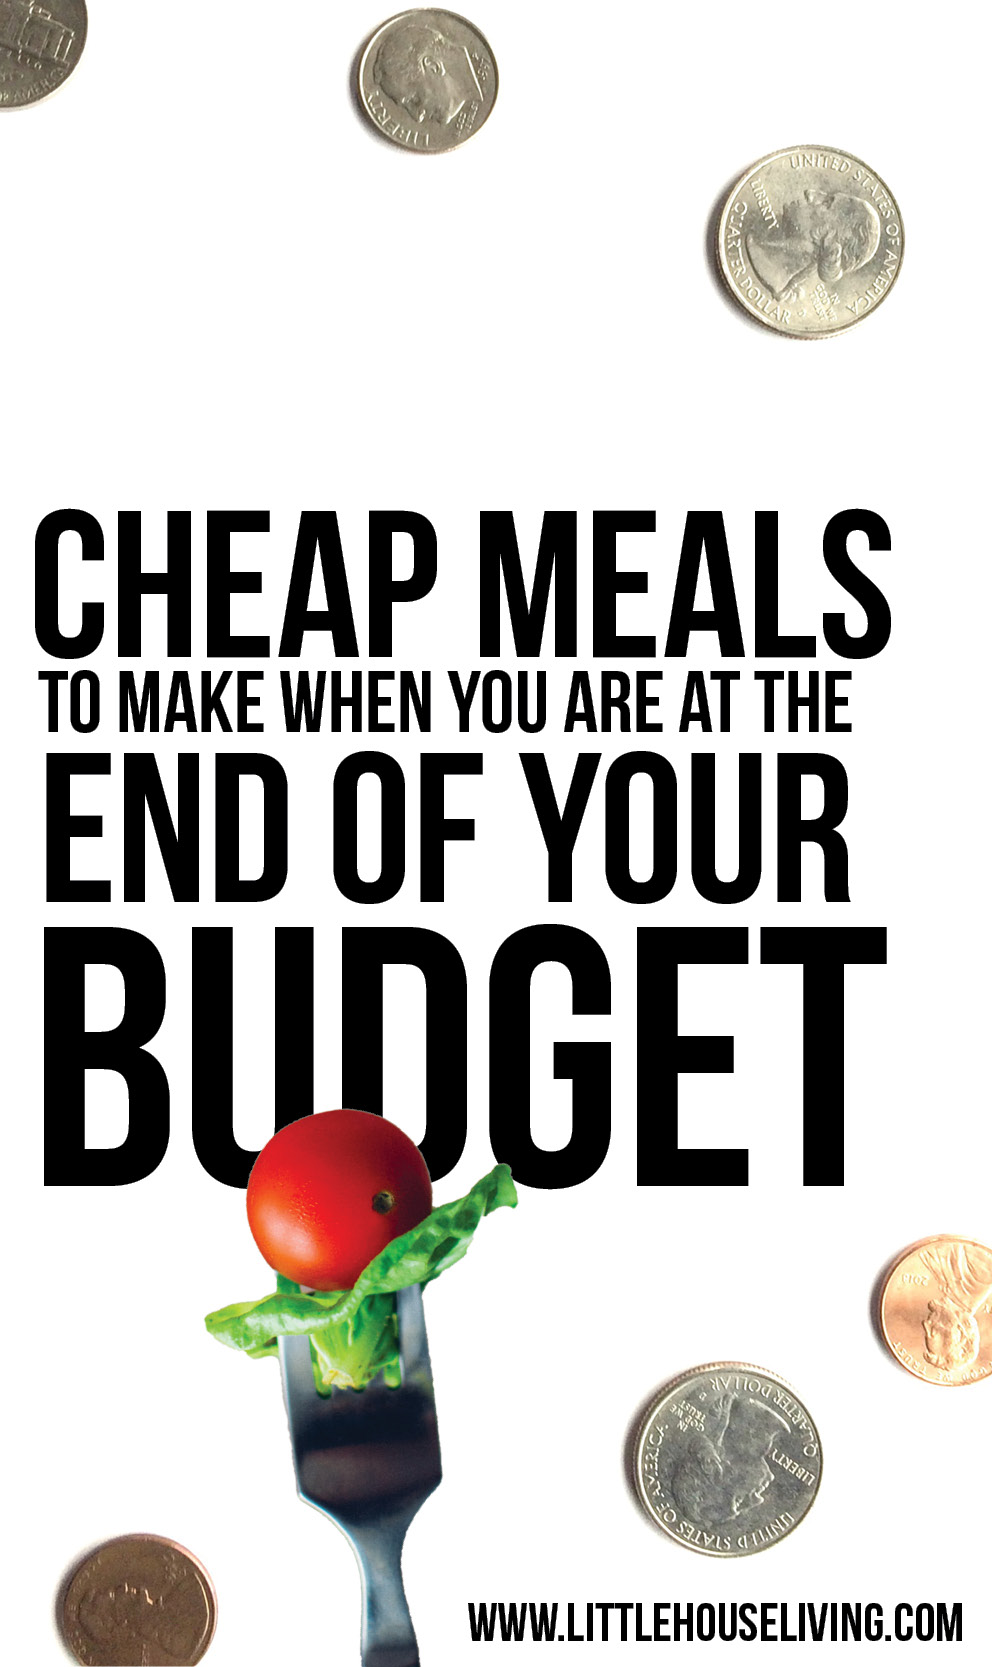 Are you at the end of your budget and still need to eat? Here are some cheap meals to make when you have more month than money. #cheap #frugal #thrifty #cheapfood #frugalliving #frugality